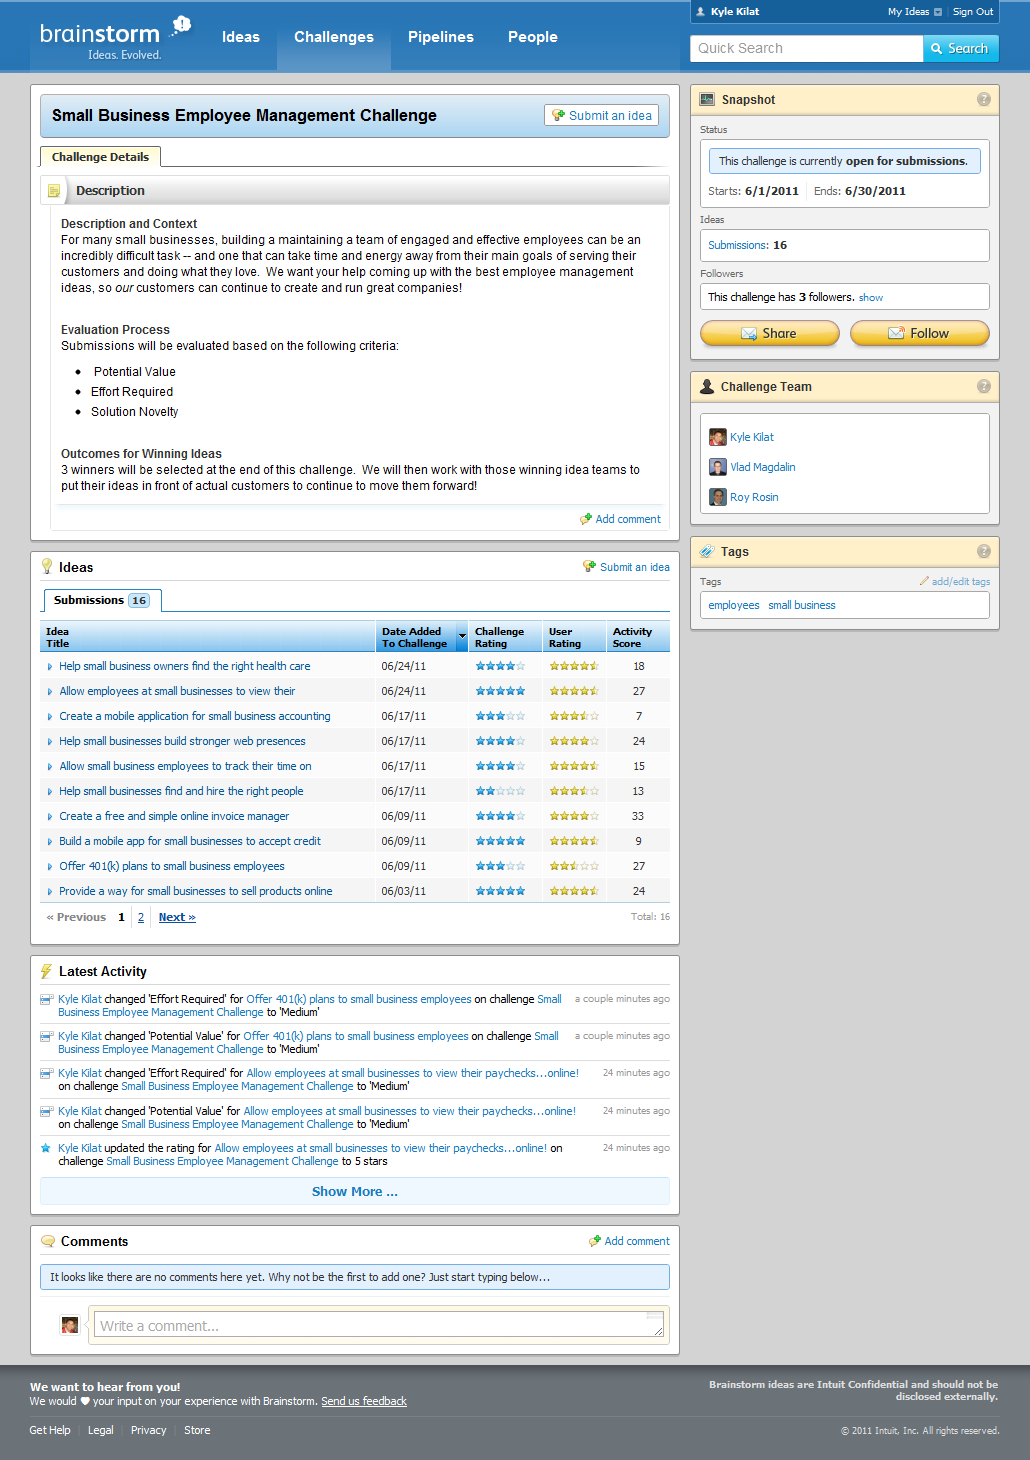 Screen shot of Intuit Brainstorm Challenges page